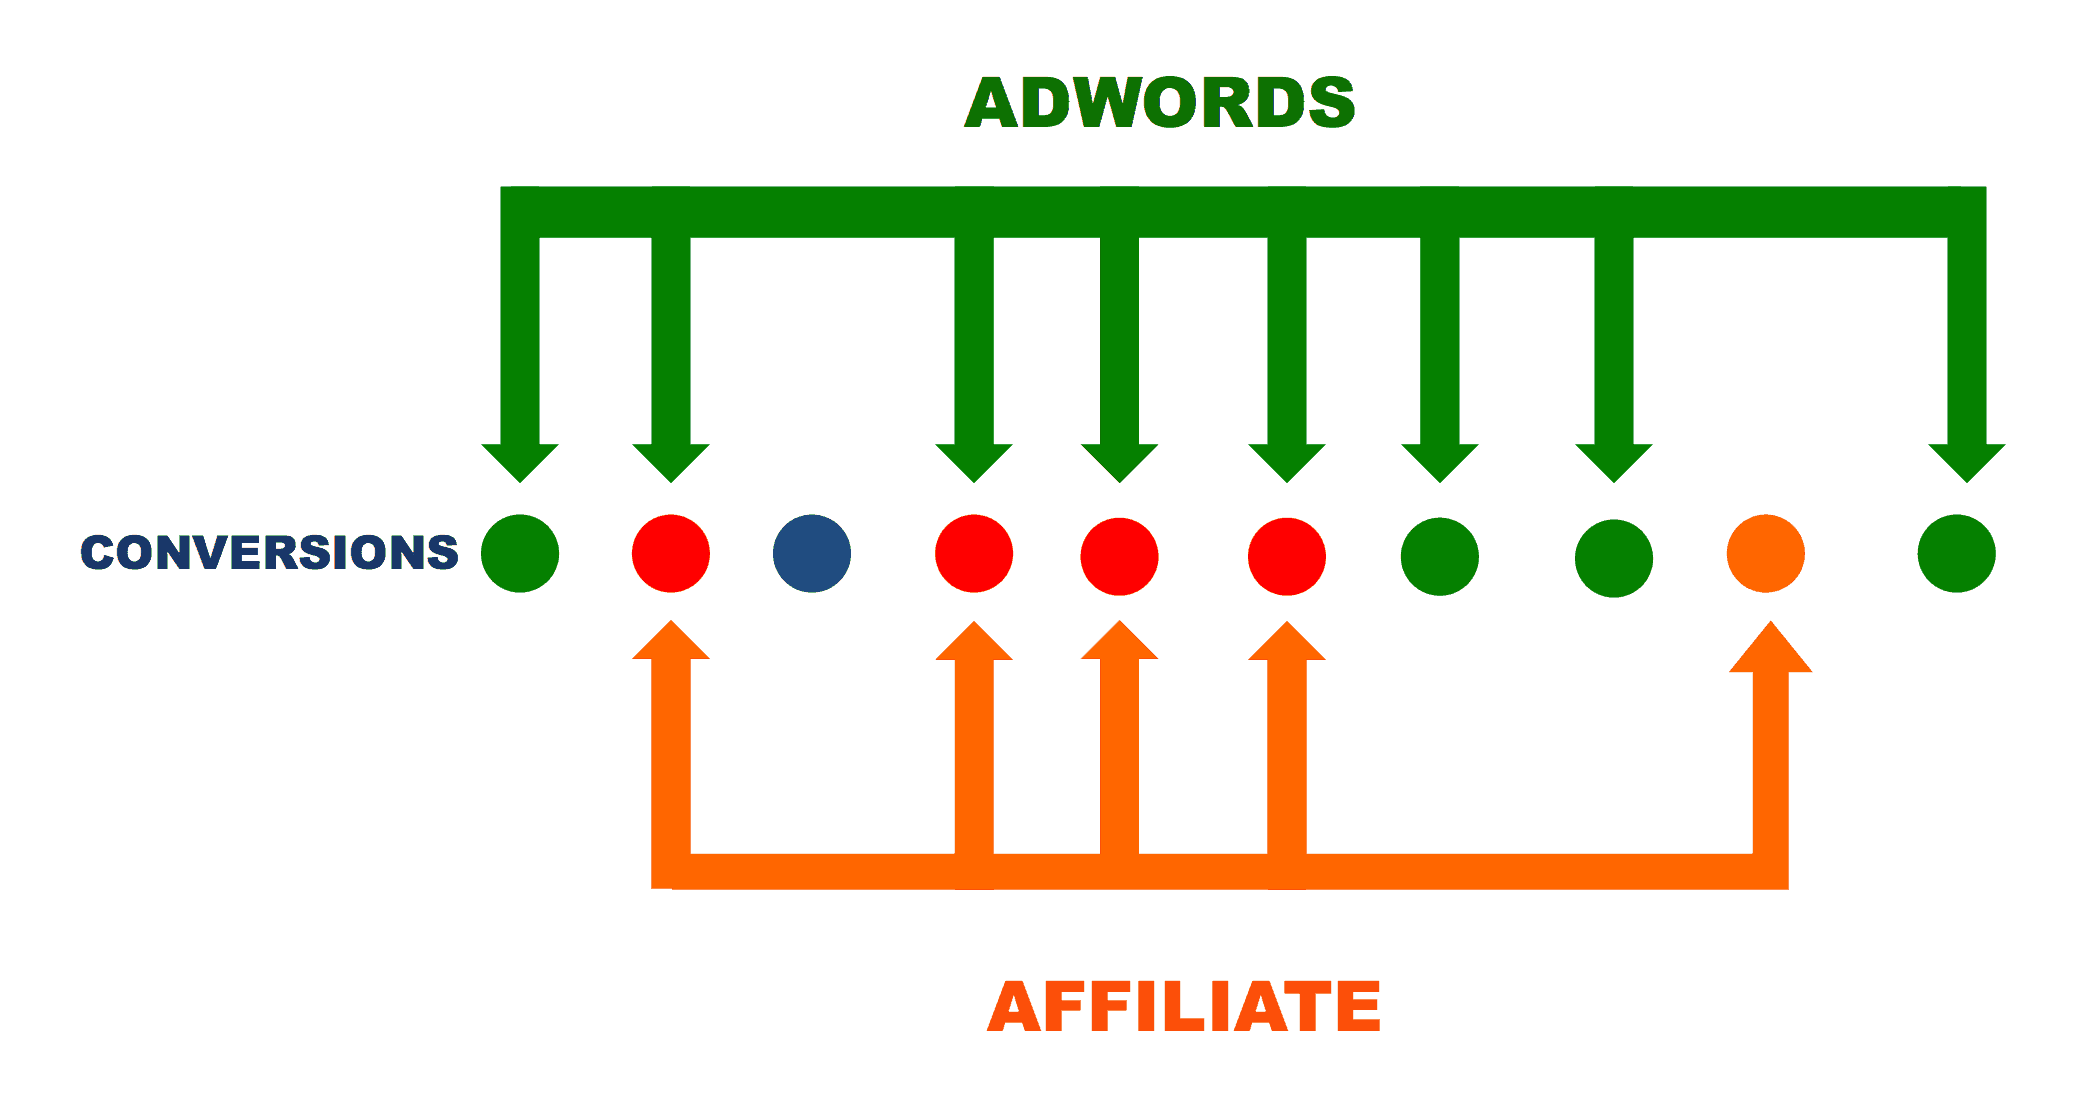 adwords and affiliate attribution - cannibalization